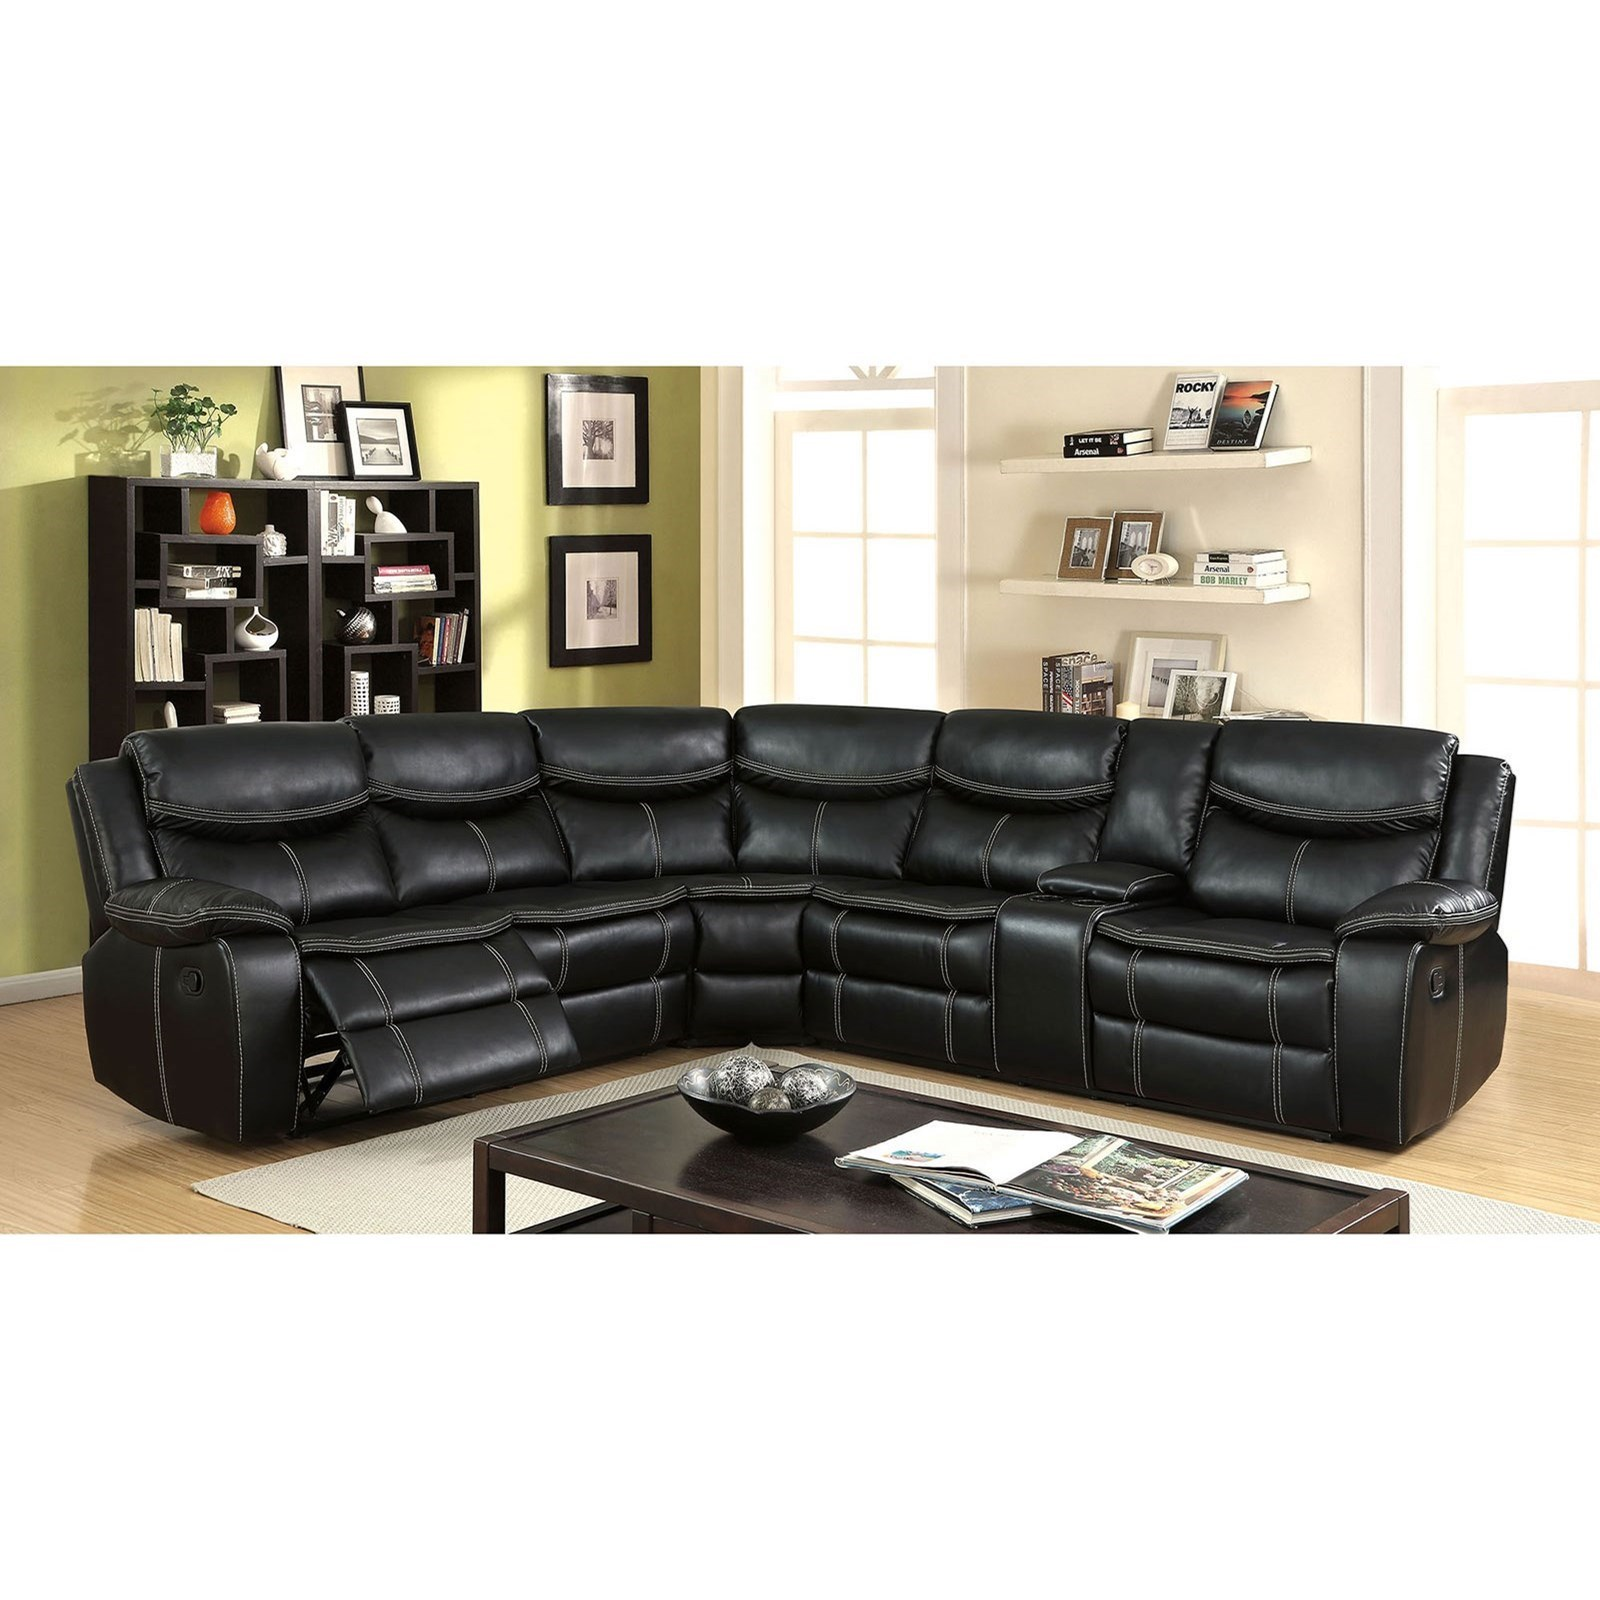 B751 Transitional Reclining Sectional With Storage Console: America Gatria II CM6982-SECTIONAL Casual Reclining 4 Seat